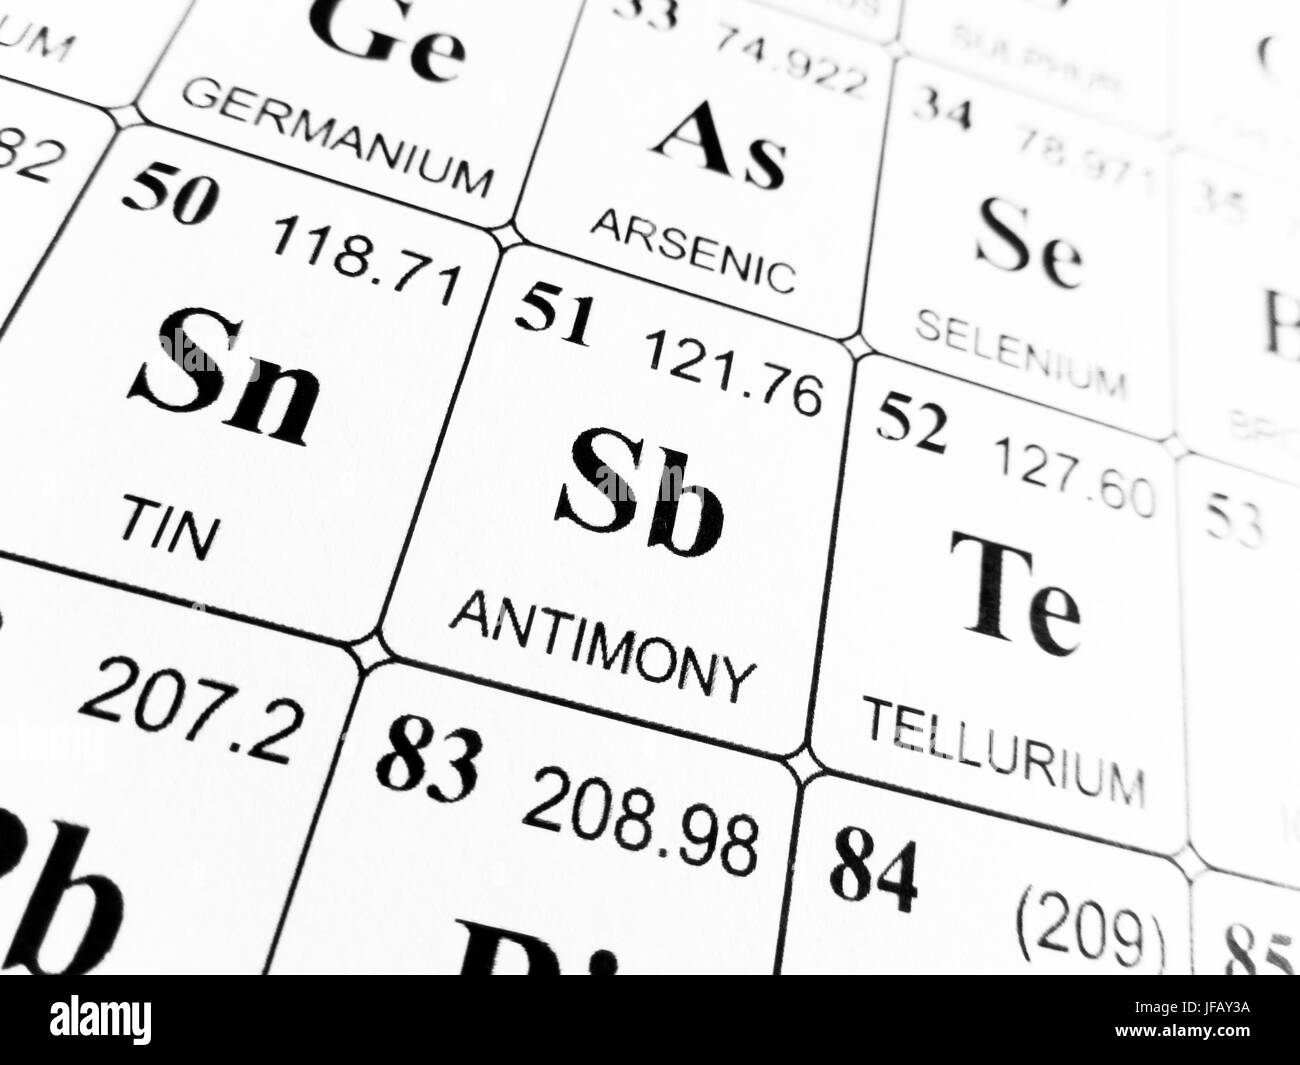 Antimony symbol periodic table gallery periodic table images where is antimony on the periodic table gallery periodic table antimony on the periodic table of gamestrikefo Gallery